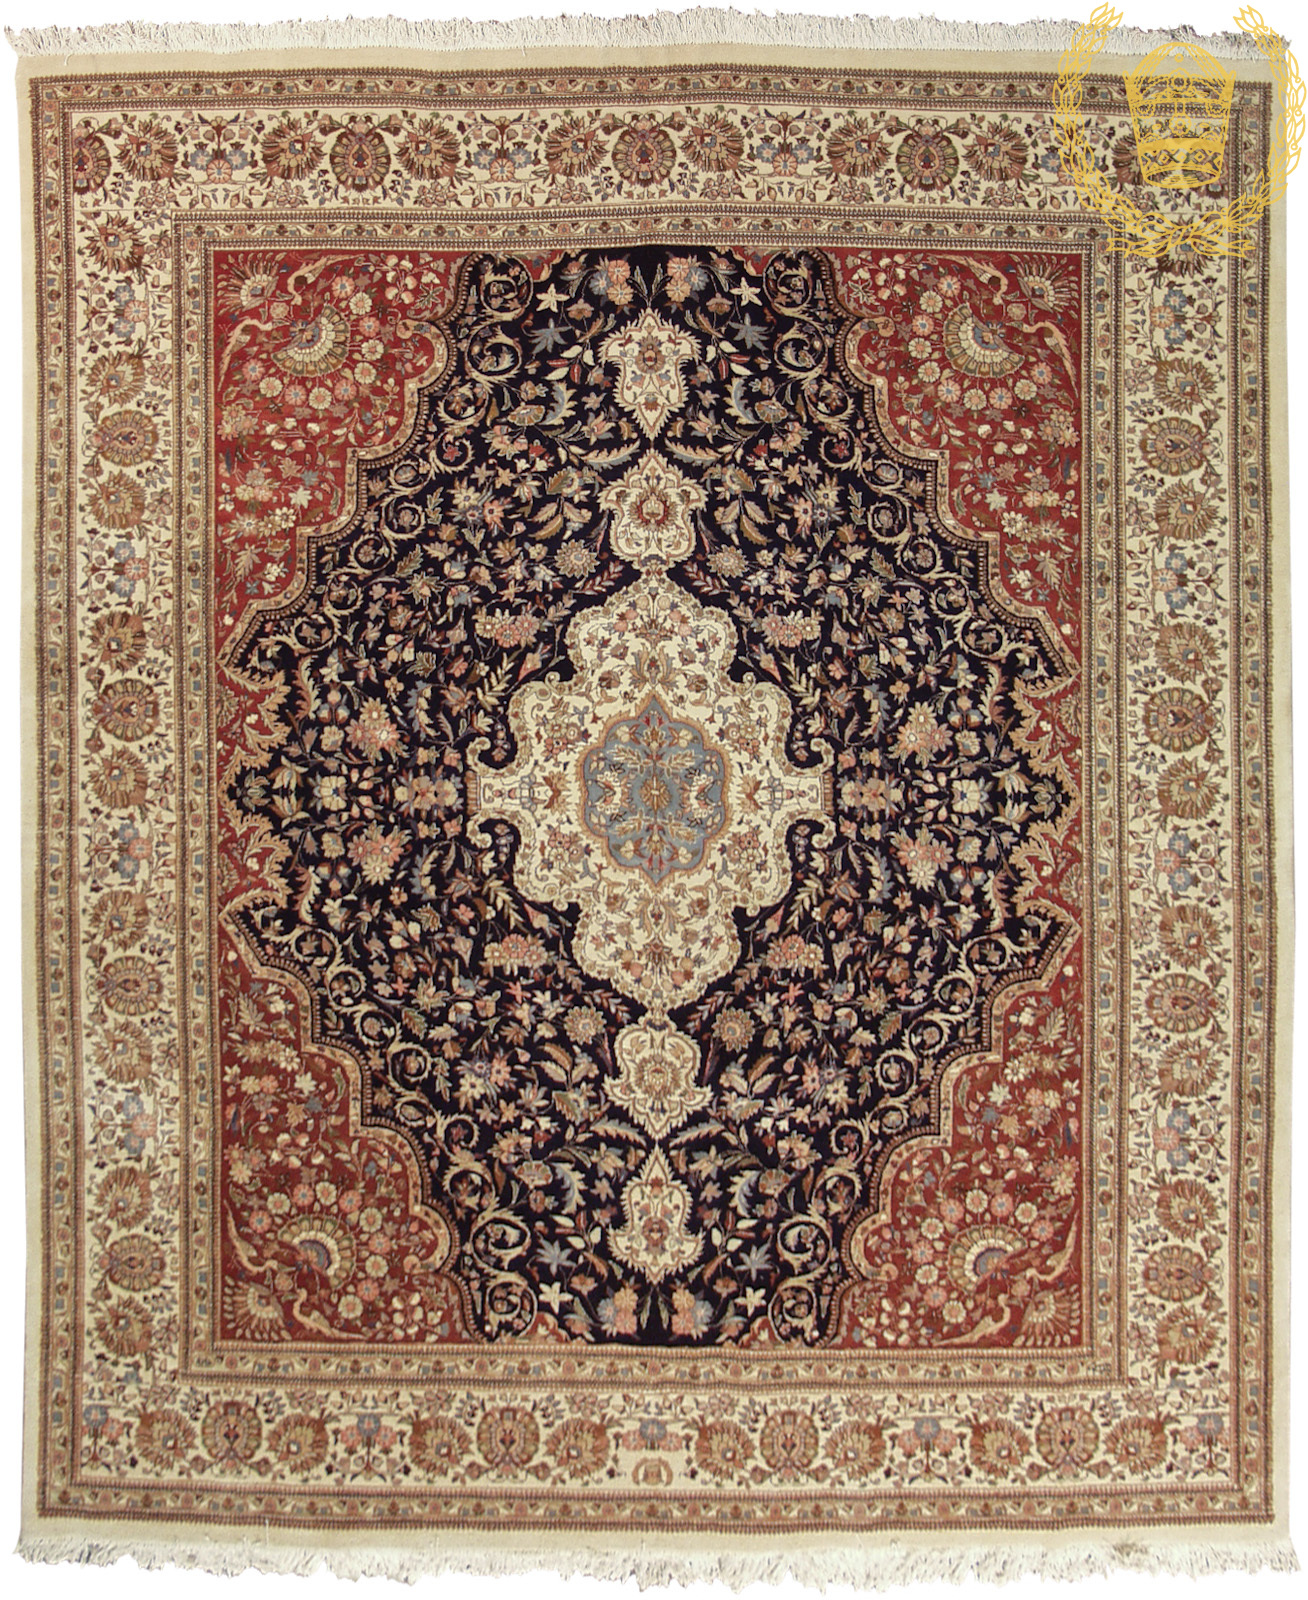 Rugs Carpets Dilmaghani Home Design Ideas HQ